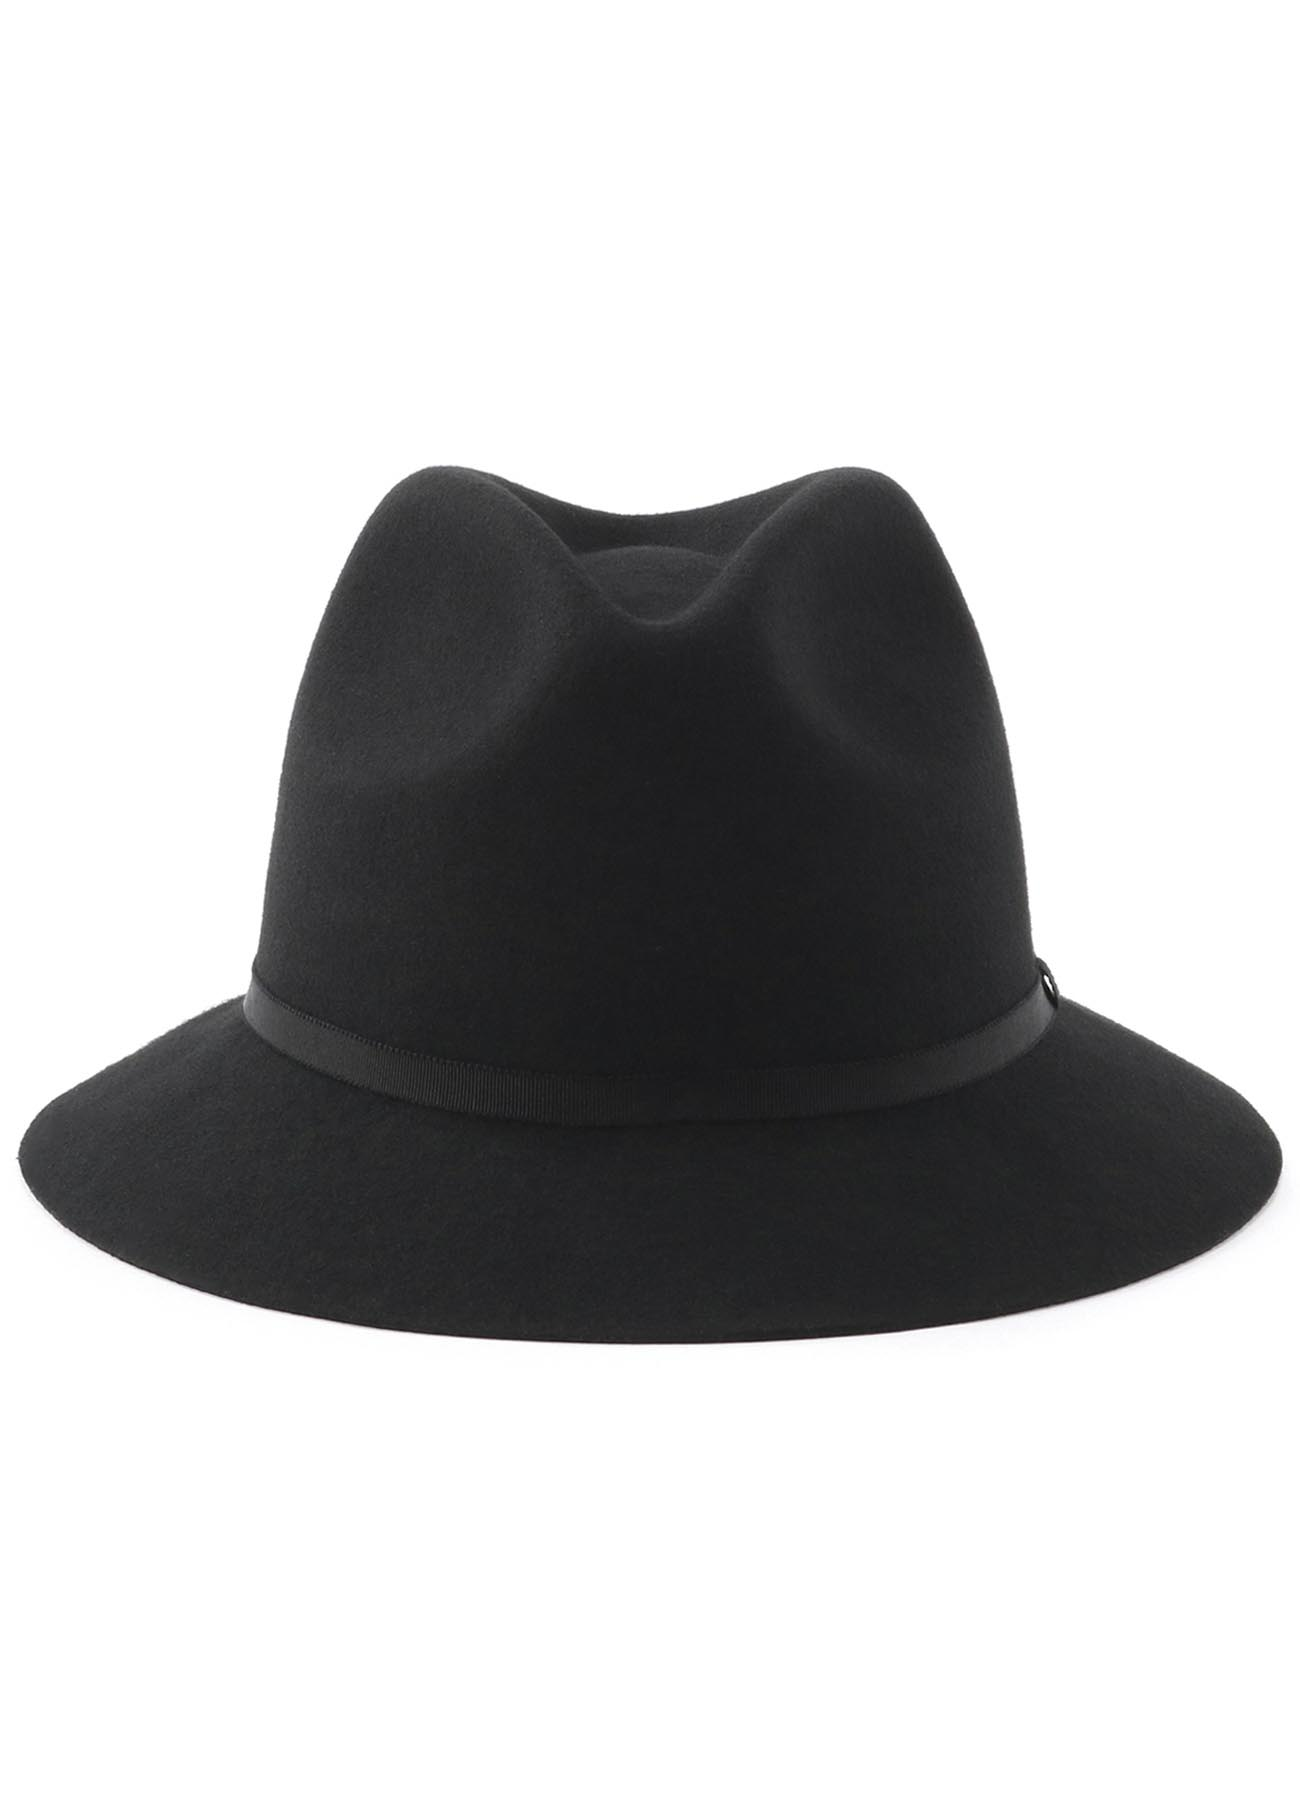 Wool Felt Short Brim Bowler Hat